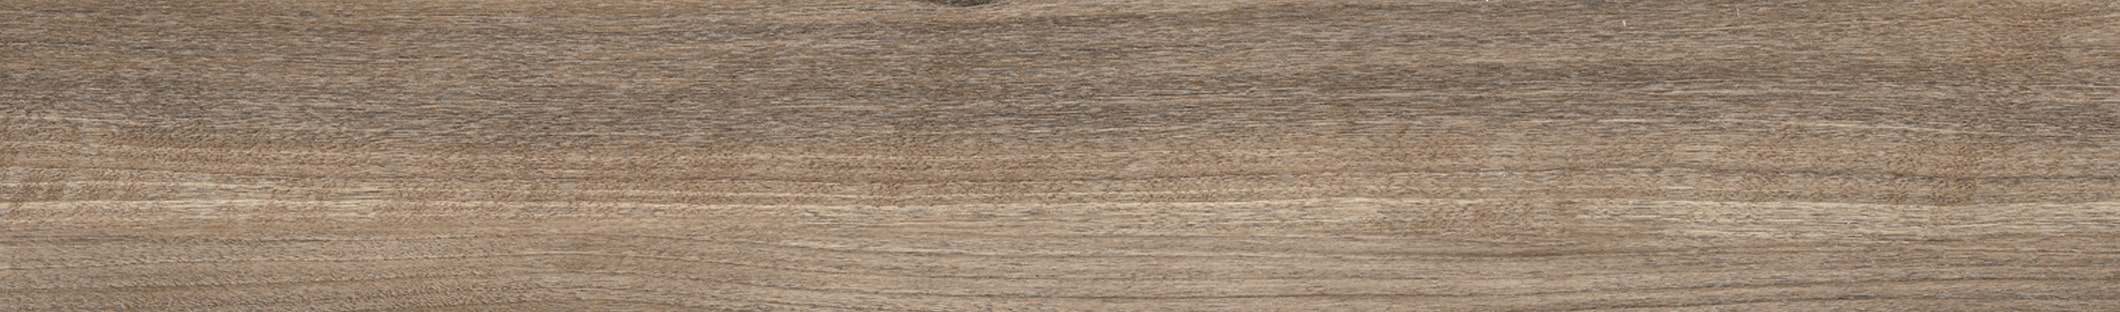 Wooden Tile / Wooden Walnut Matte 10mm 26.5 x 180